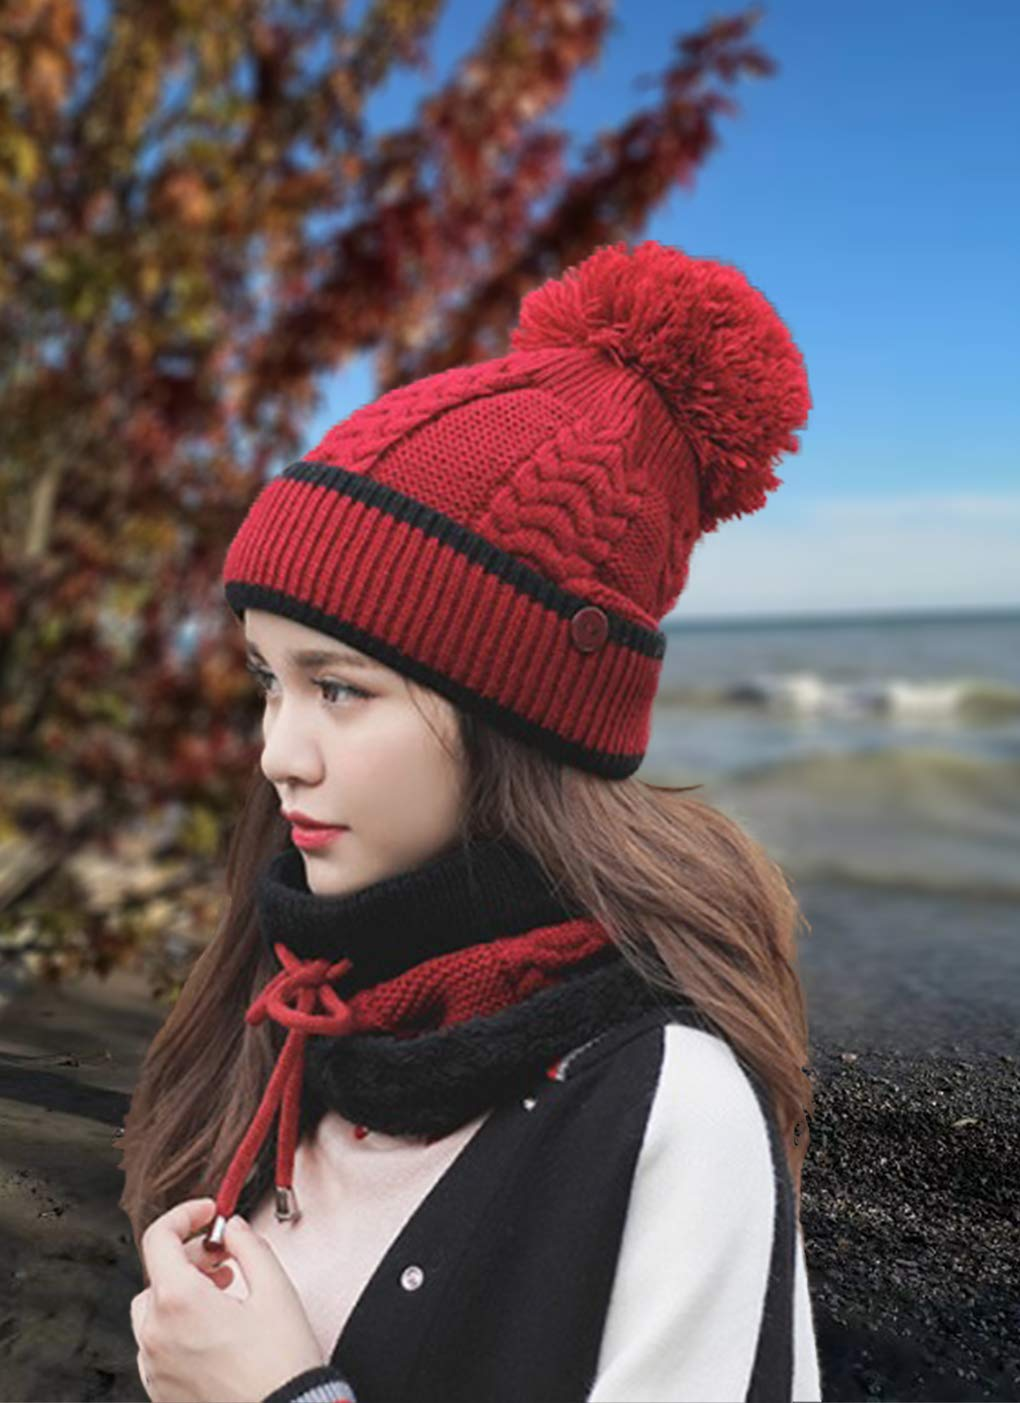 Scarf Garnet Keep you warm and fashion by Winlord Beanie Winter Hats for Women and Young Girls Mouth Mask Set